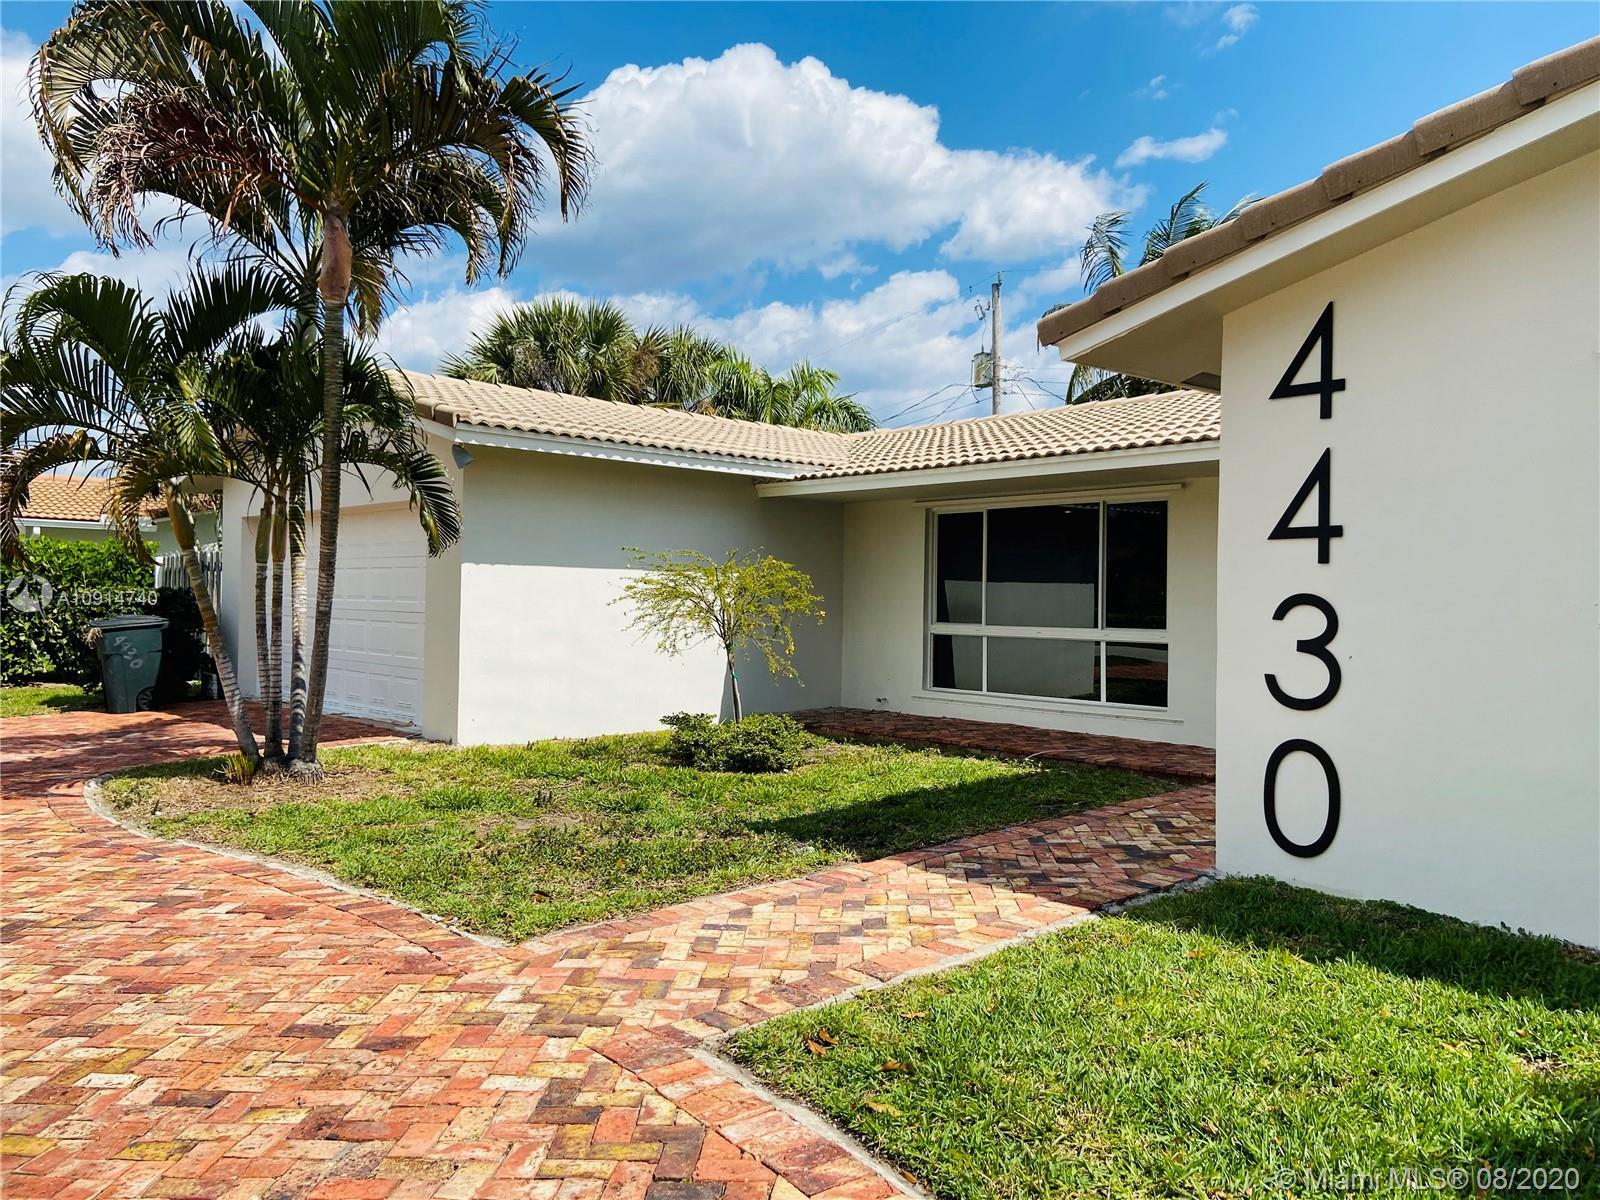 This recently renovated, spacious family home is the exclusive community of Venetian Isles in Lighth